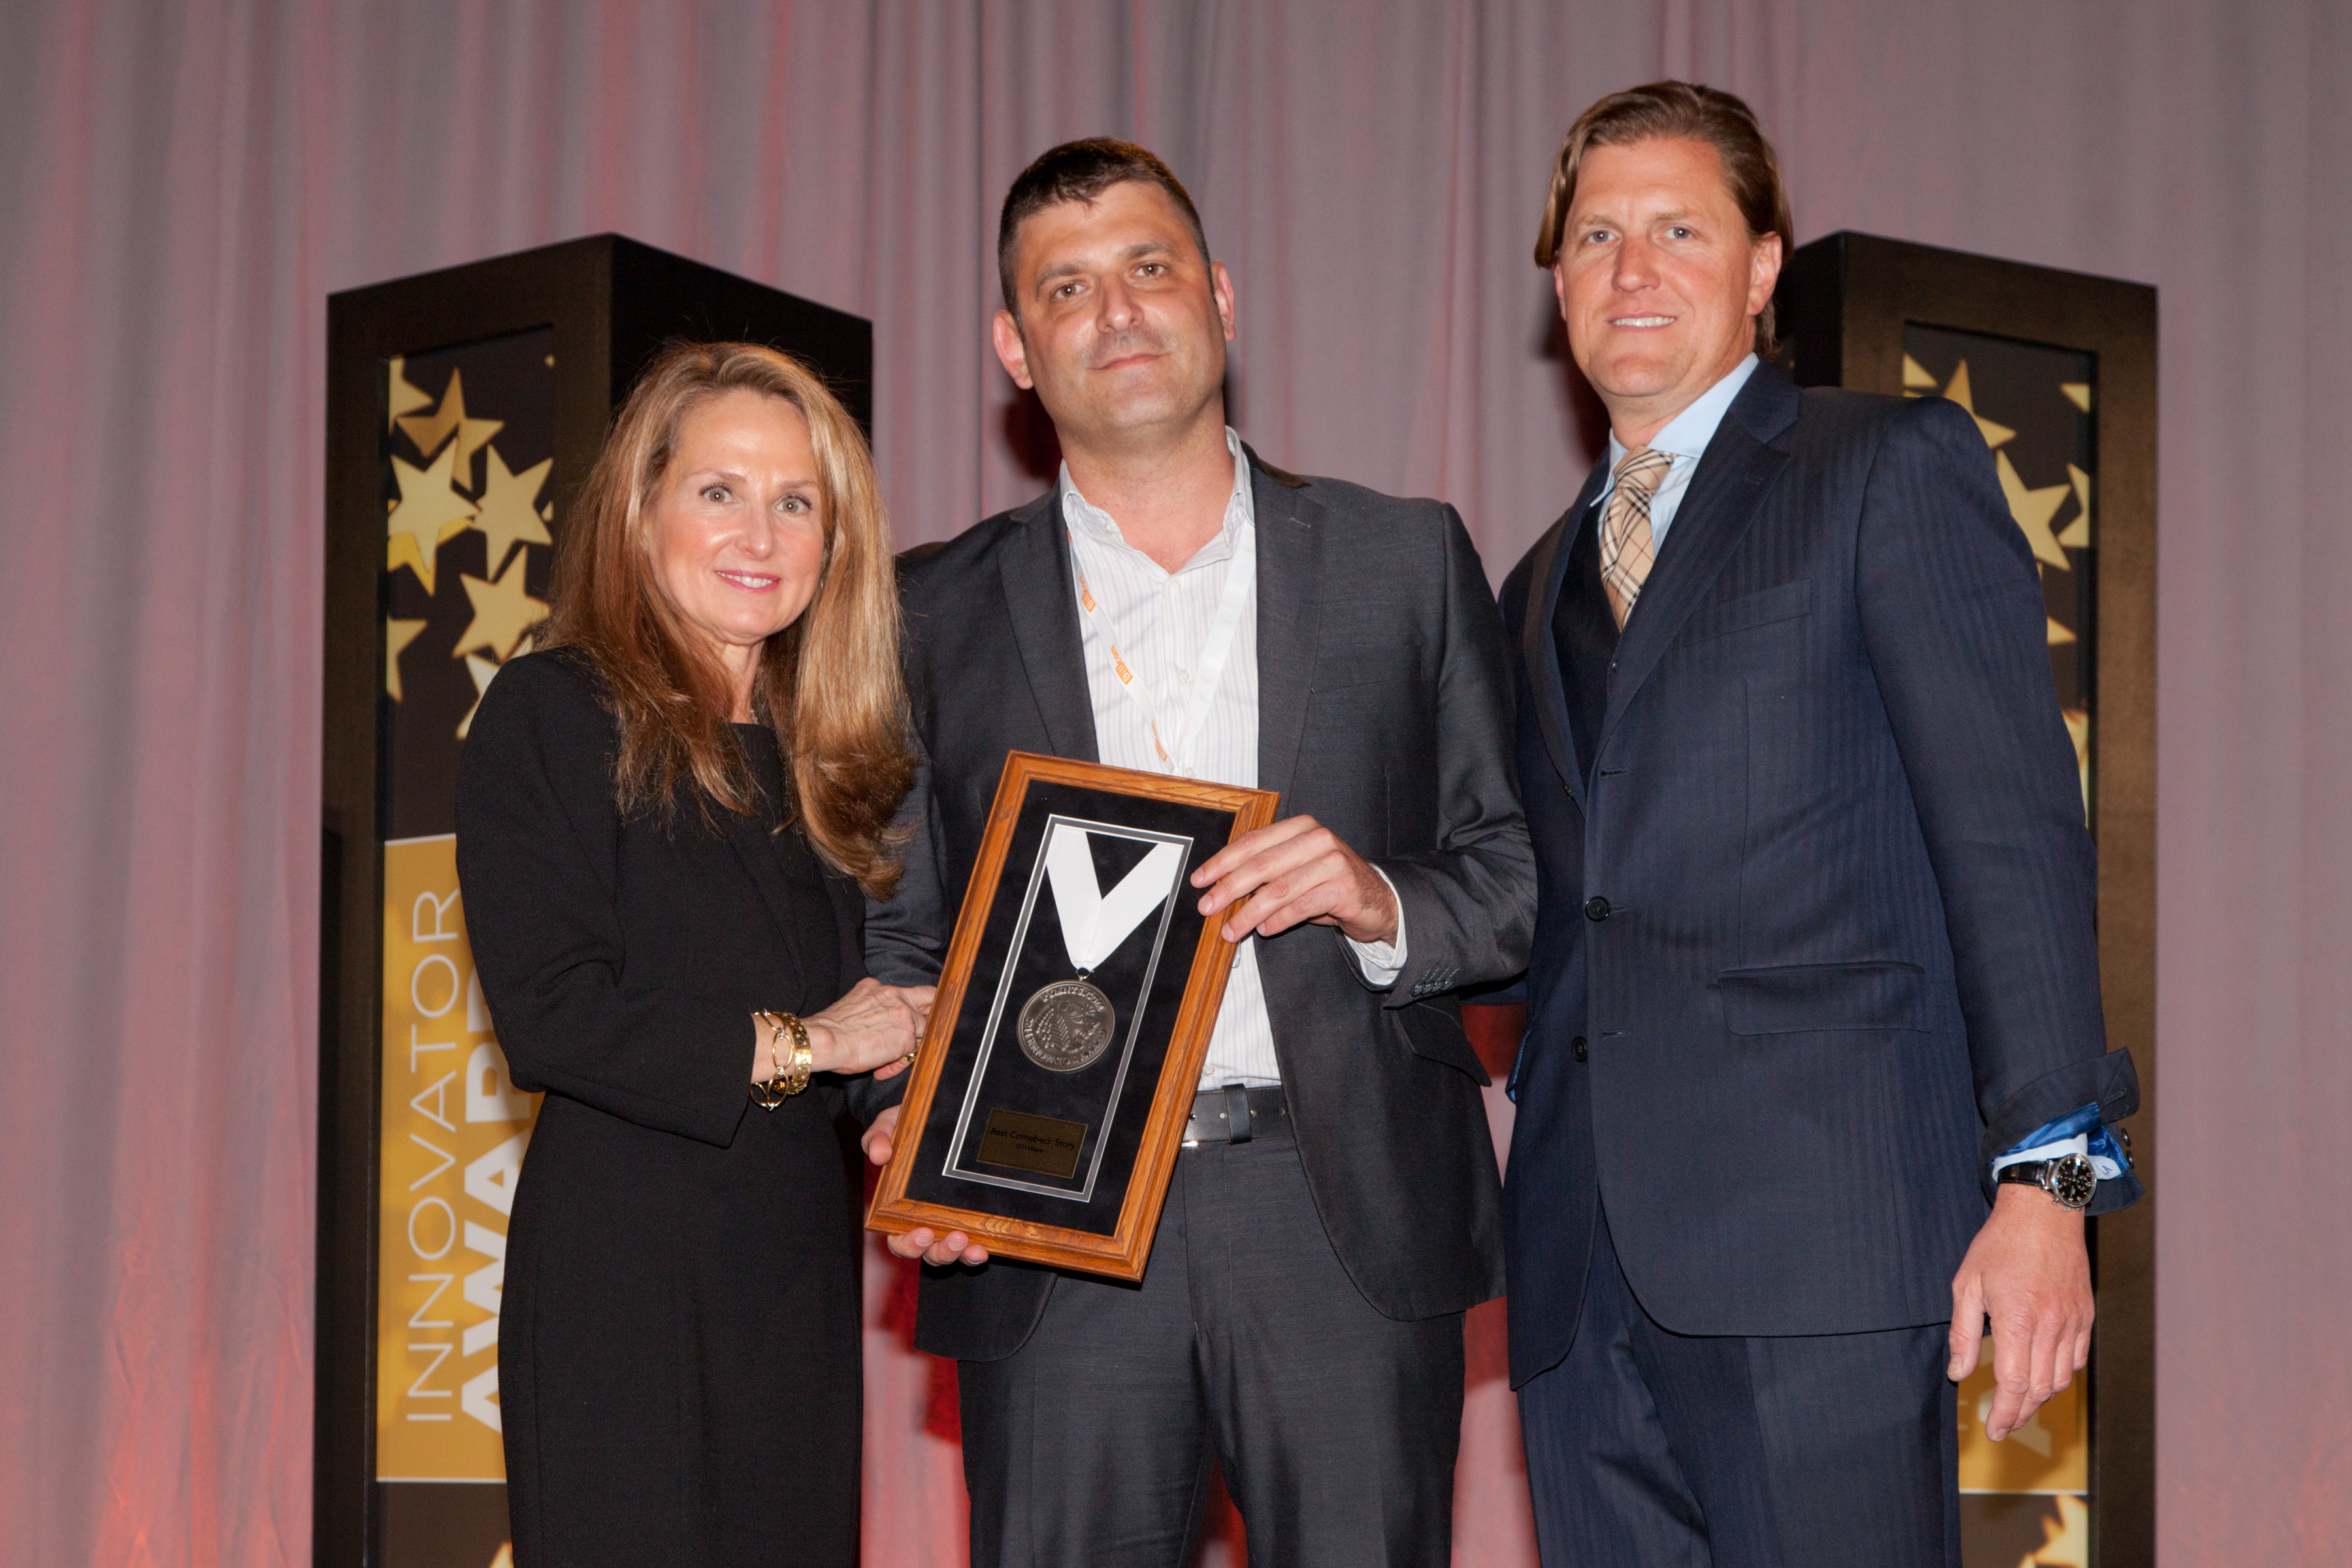 """Presenting a 2014 award for """"Best Comeback Story"""" to Shlomi Eytan (center), oti global vice president of sales and marketing, is Karen Webster (left) founder and President of PYMNTS.com, and Tim Attinger (right), Strategy, Corporate Development and Digital Innovation for Blackhawk Network. oti is a global provider of NFC and cashless payment solutions. Photo courtesy of Richard Pasley."""